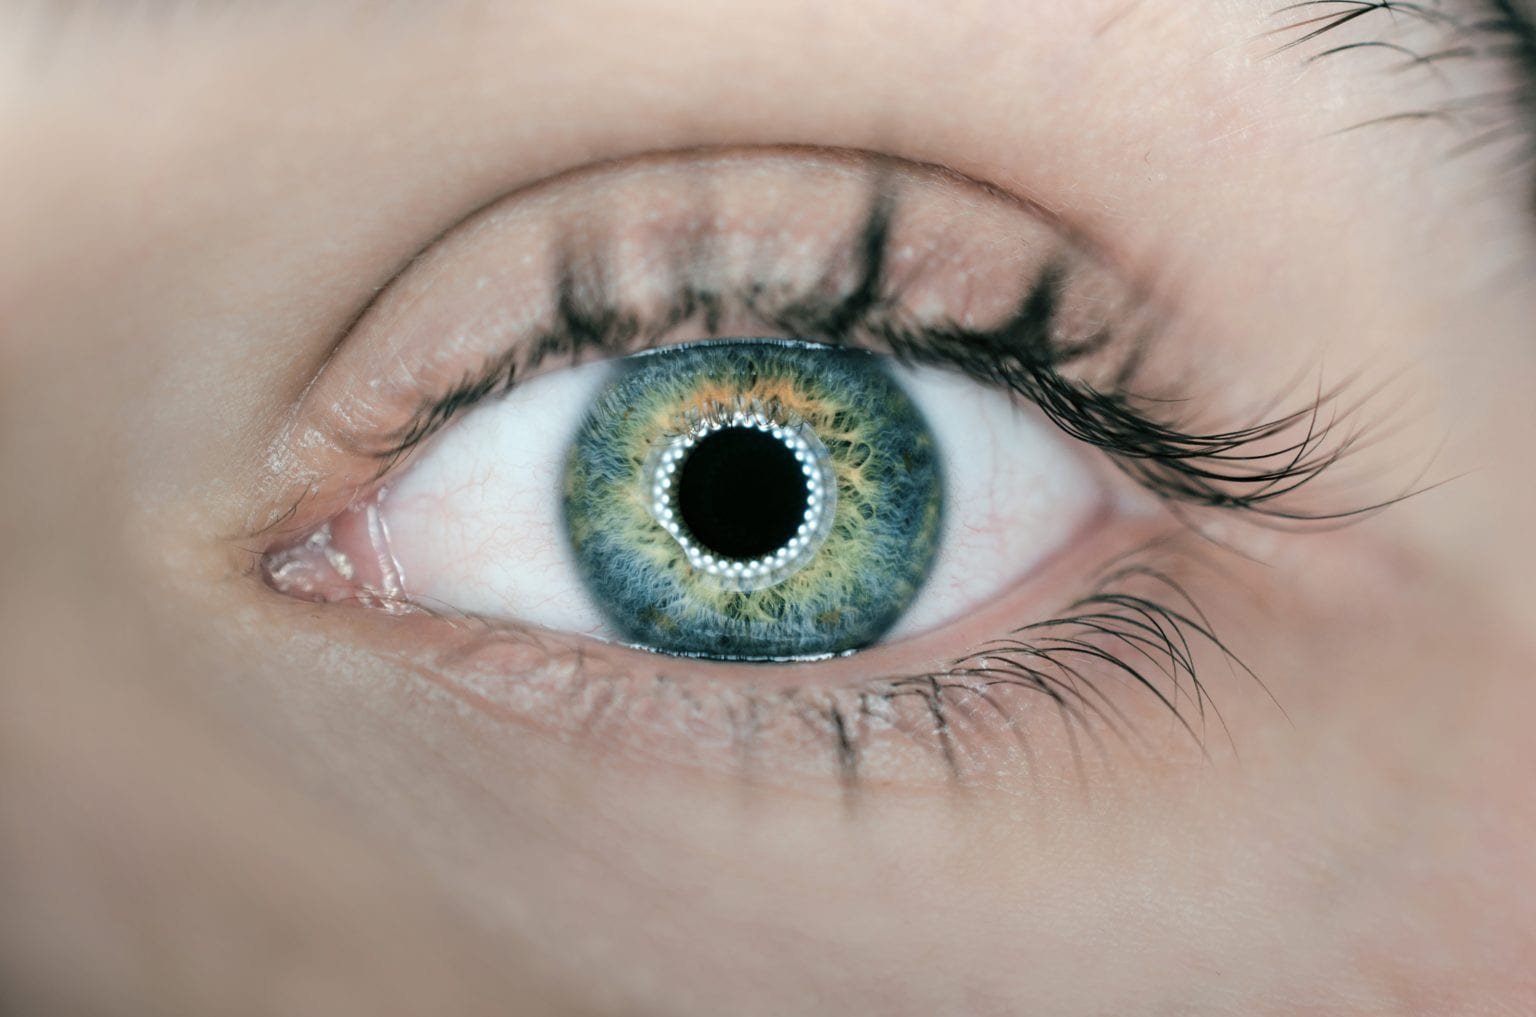 SIGNS, SYMPTOMS, AND CAUSES OF CATARACTS